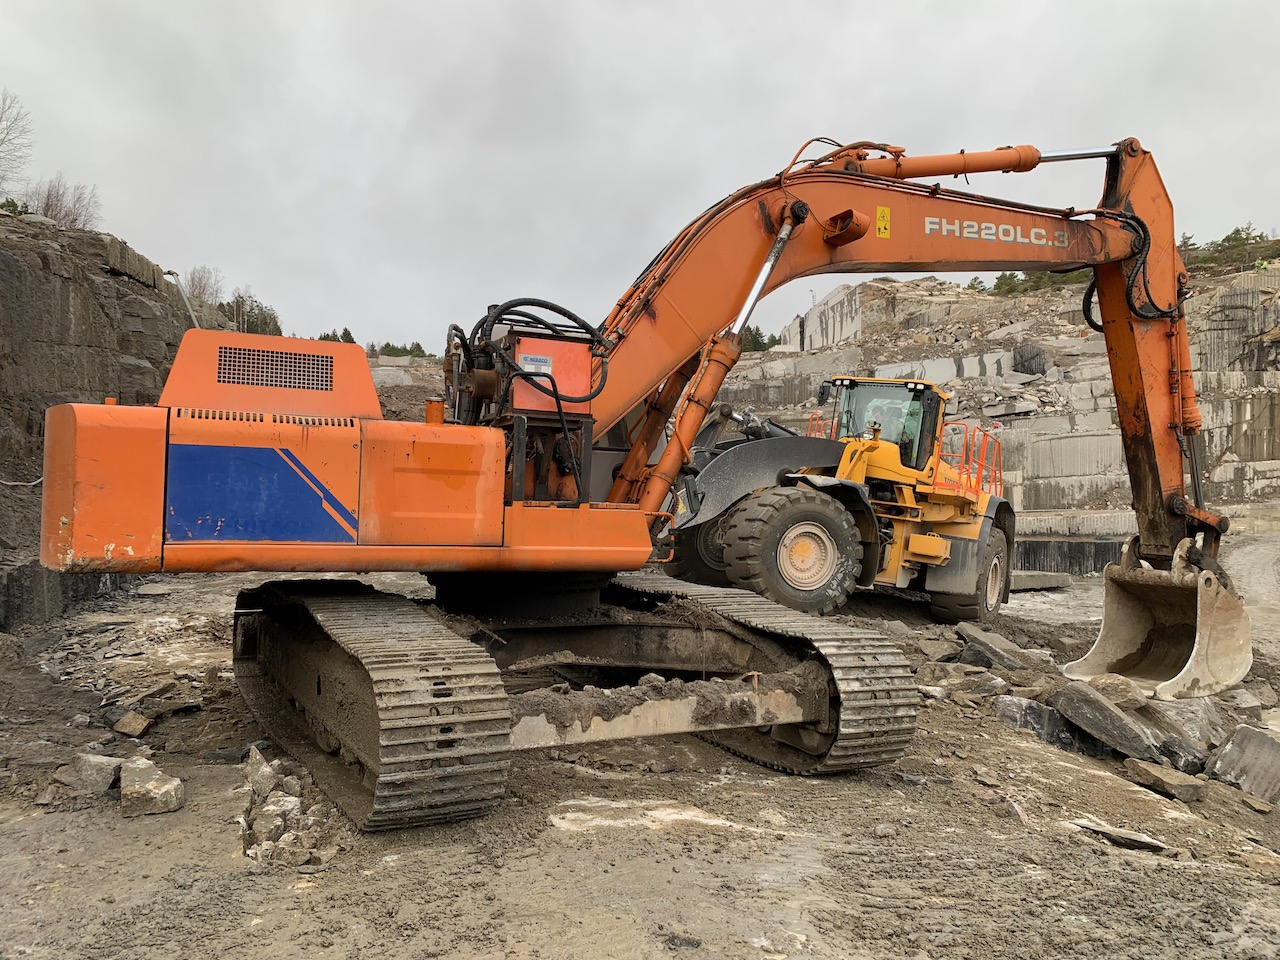 2002 Horizontal drilling application Hitachi FH220